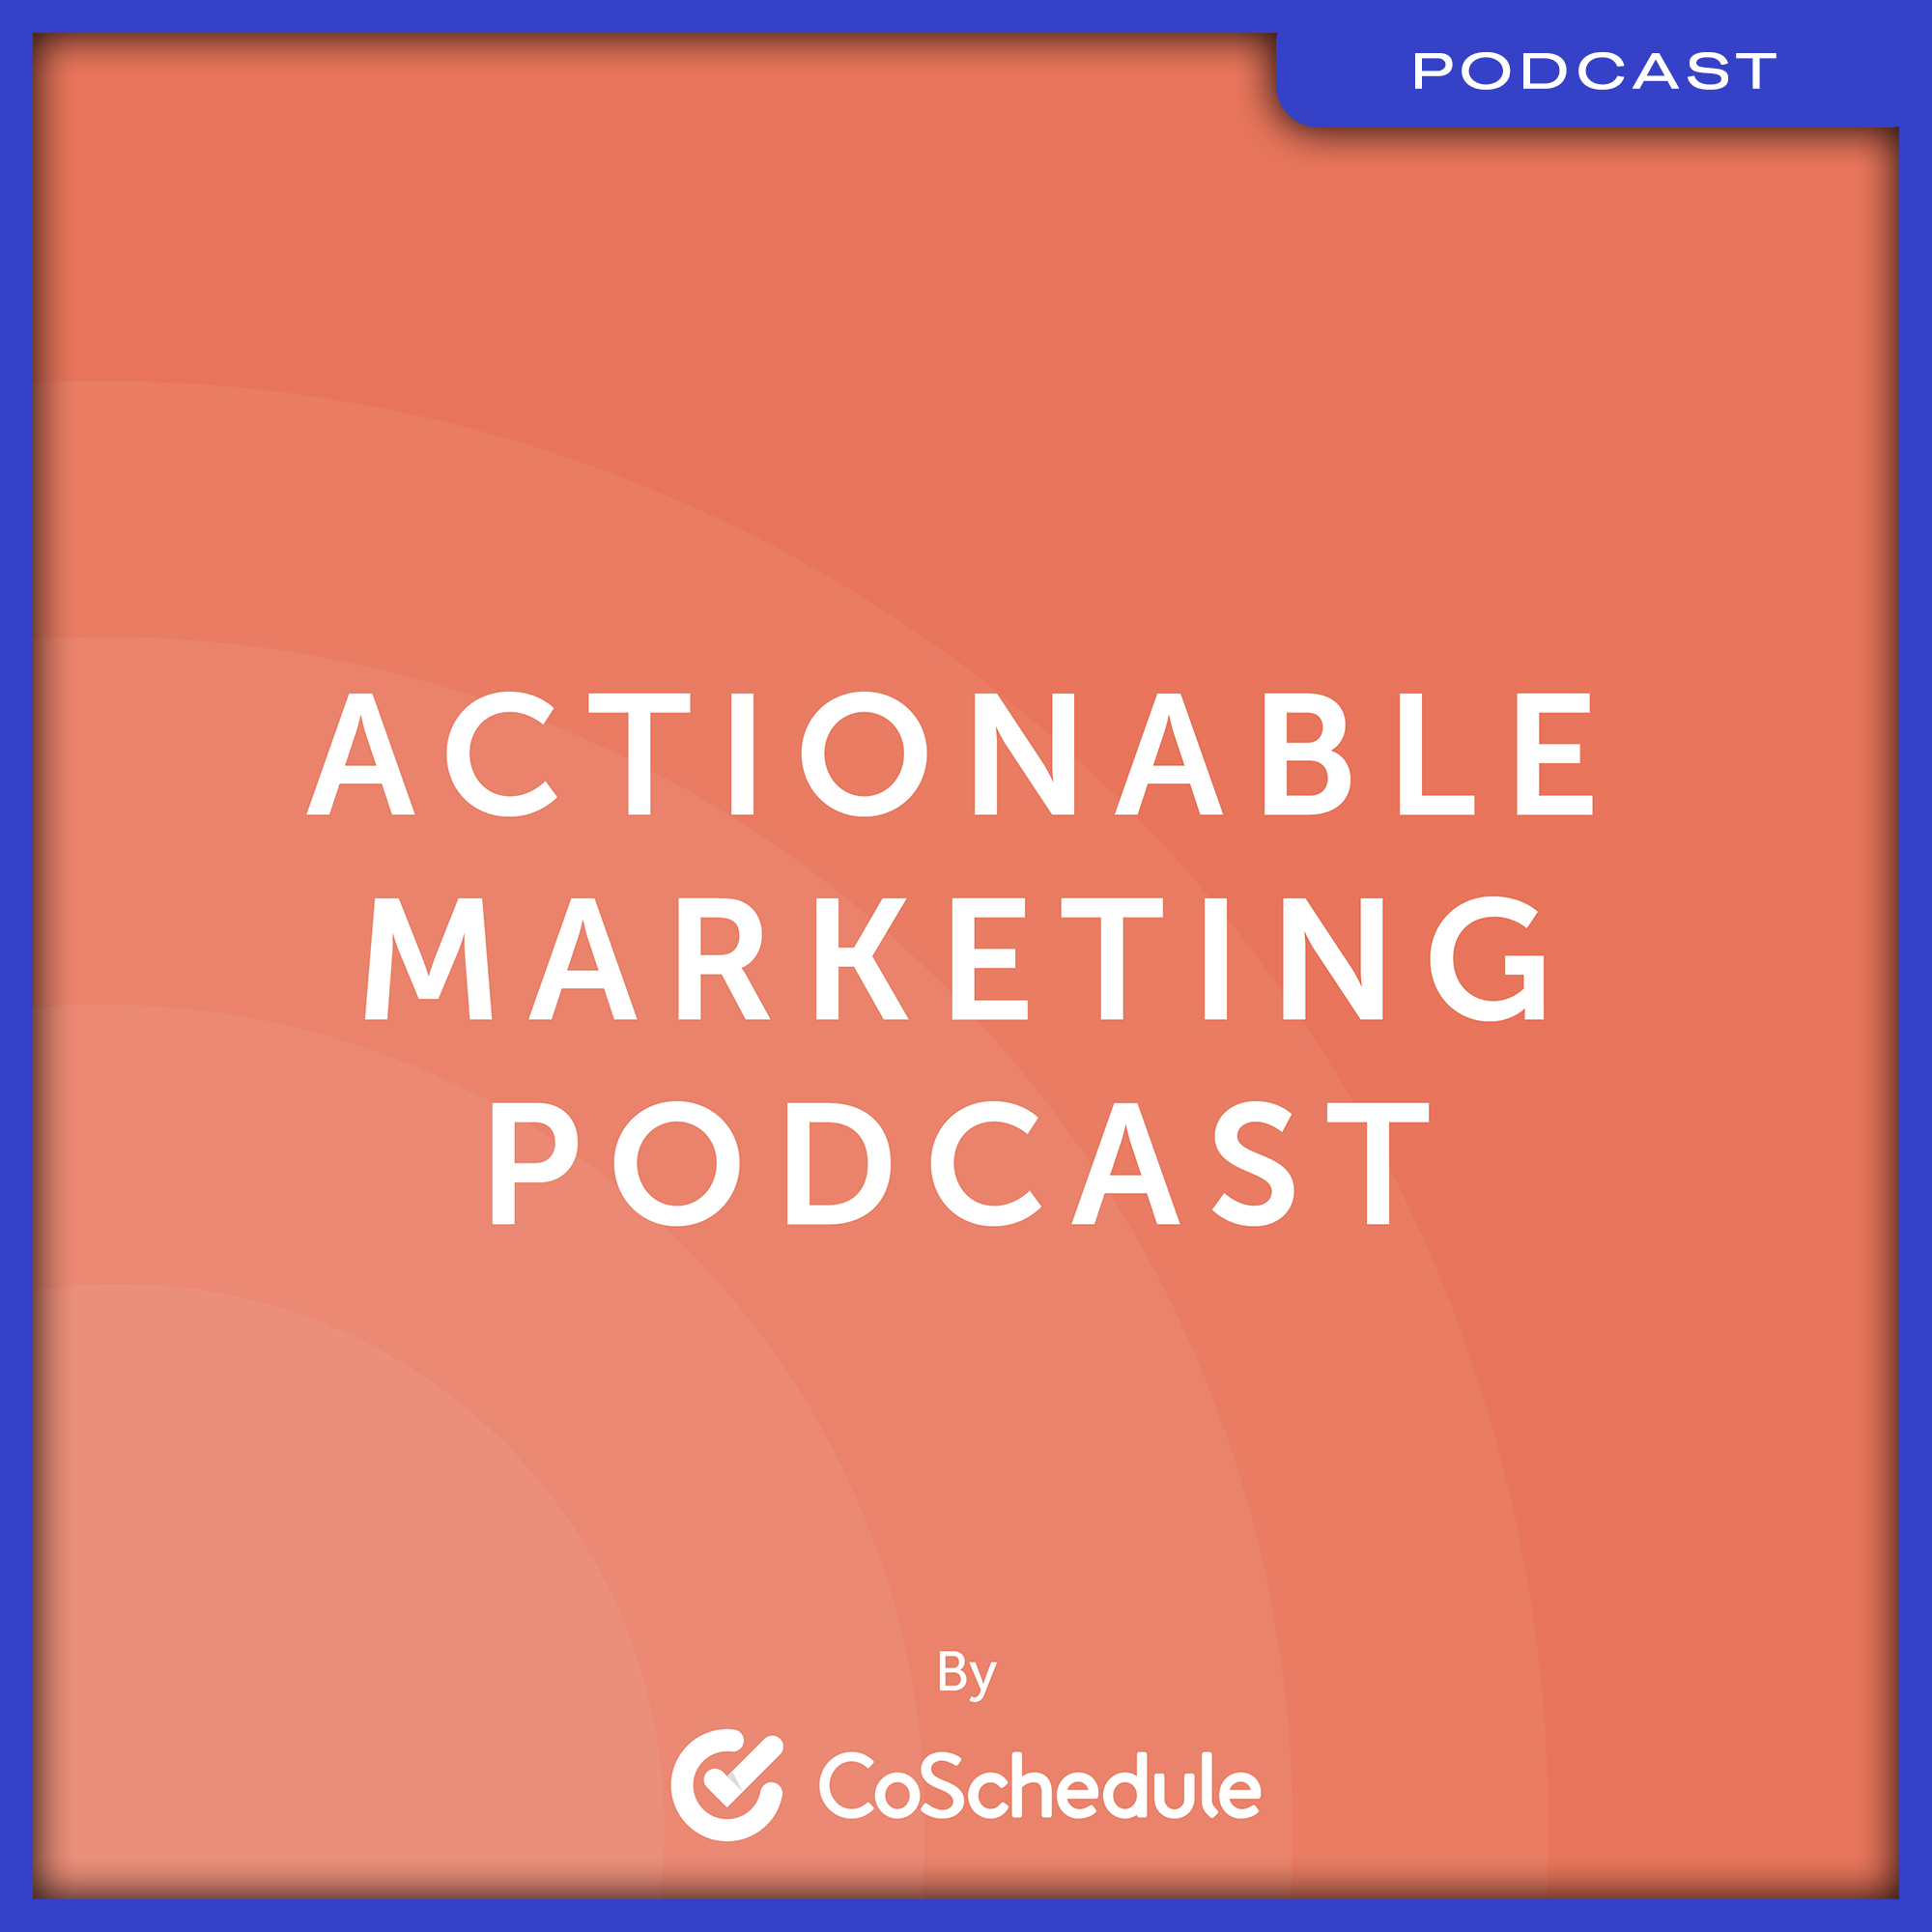 11-Podcast--Actionable-Marketing-Podcast--Retain-an-Engaged-Audience-with-Lindsay-Tjepkema-from-Casted